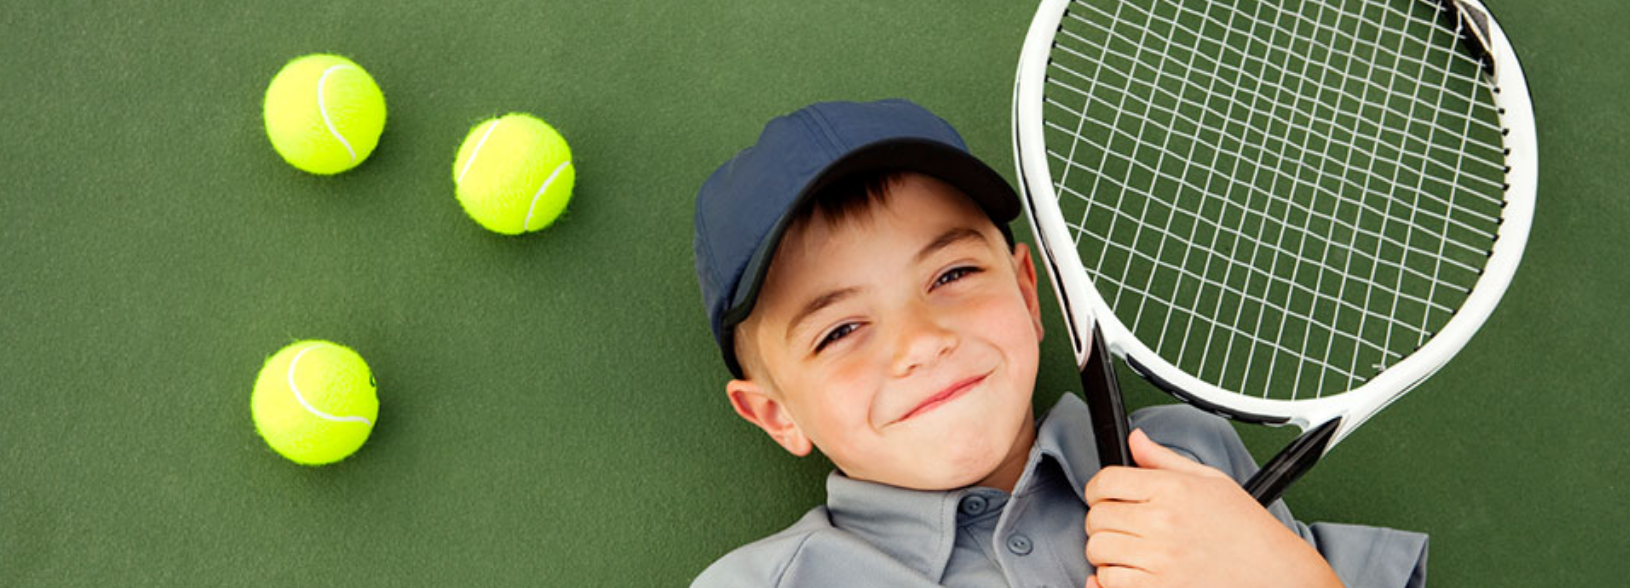 Quality Sport Programs : Tennis